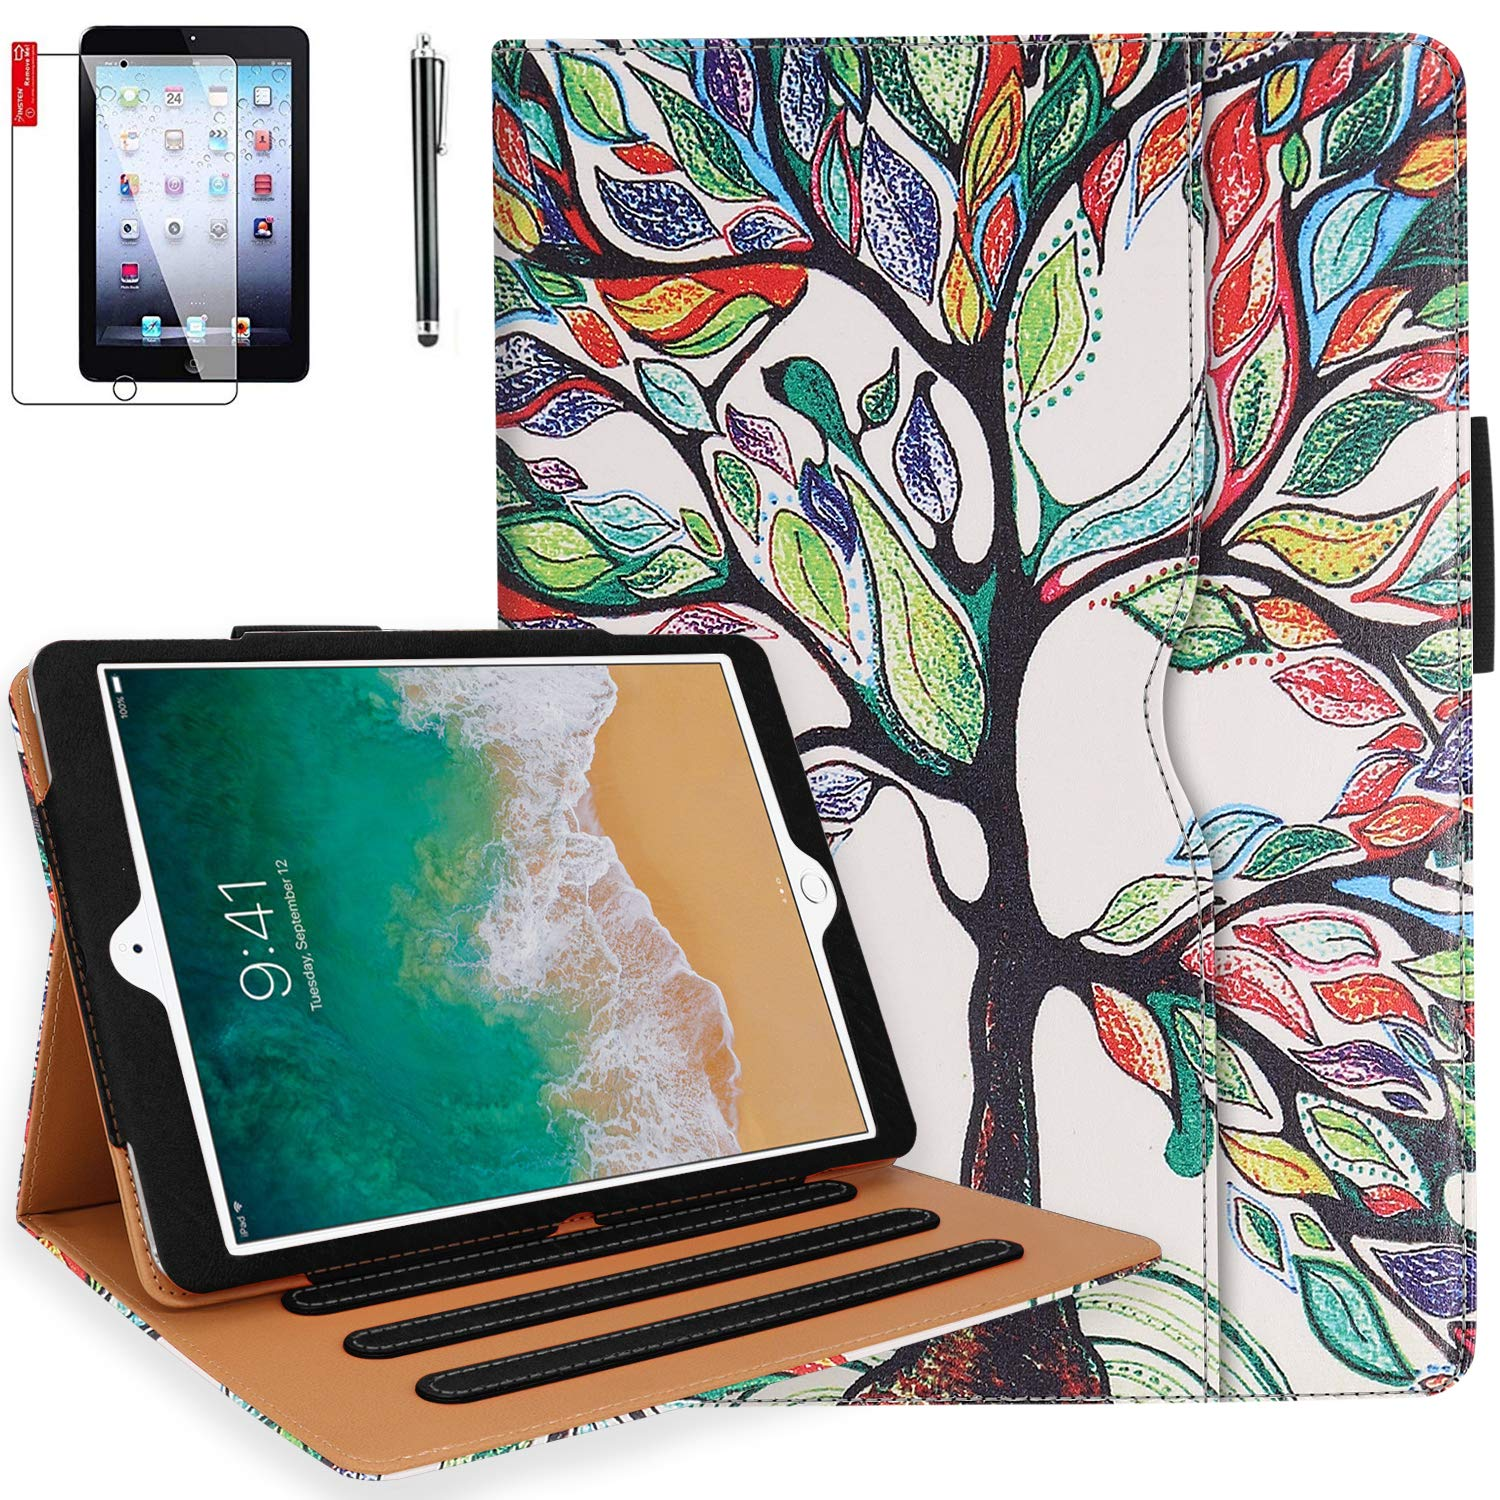 iPad 6th Generation Cases, iPad Air 2 Case, iPad Air Case with Pencil Holder, Screen Protector and Stylus - iPad 9.7 inch 2018 2017 Case - Hand Strap, Auto Sleep Wake, Multi-Angle Stand(Love Tree)